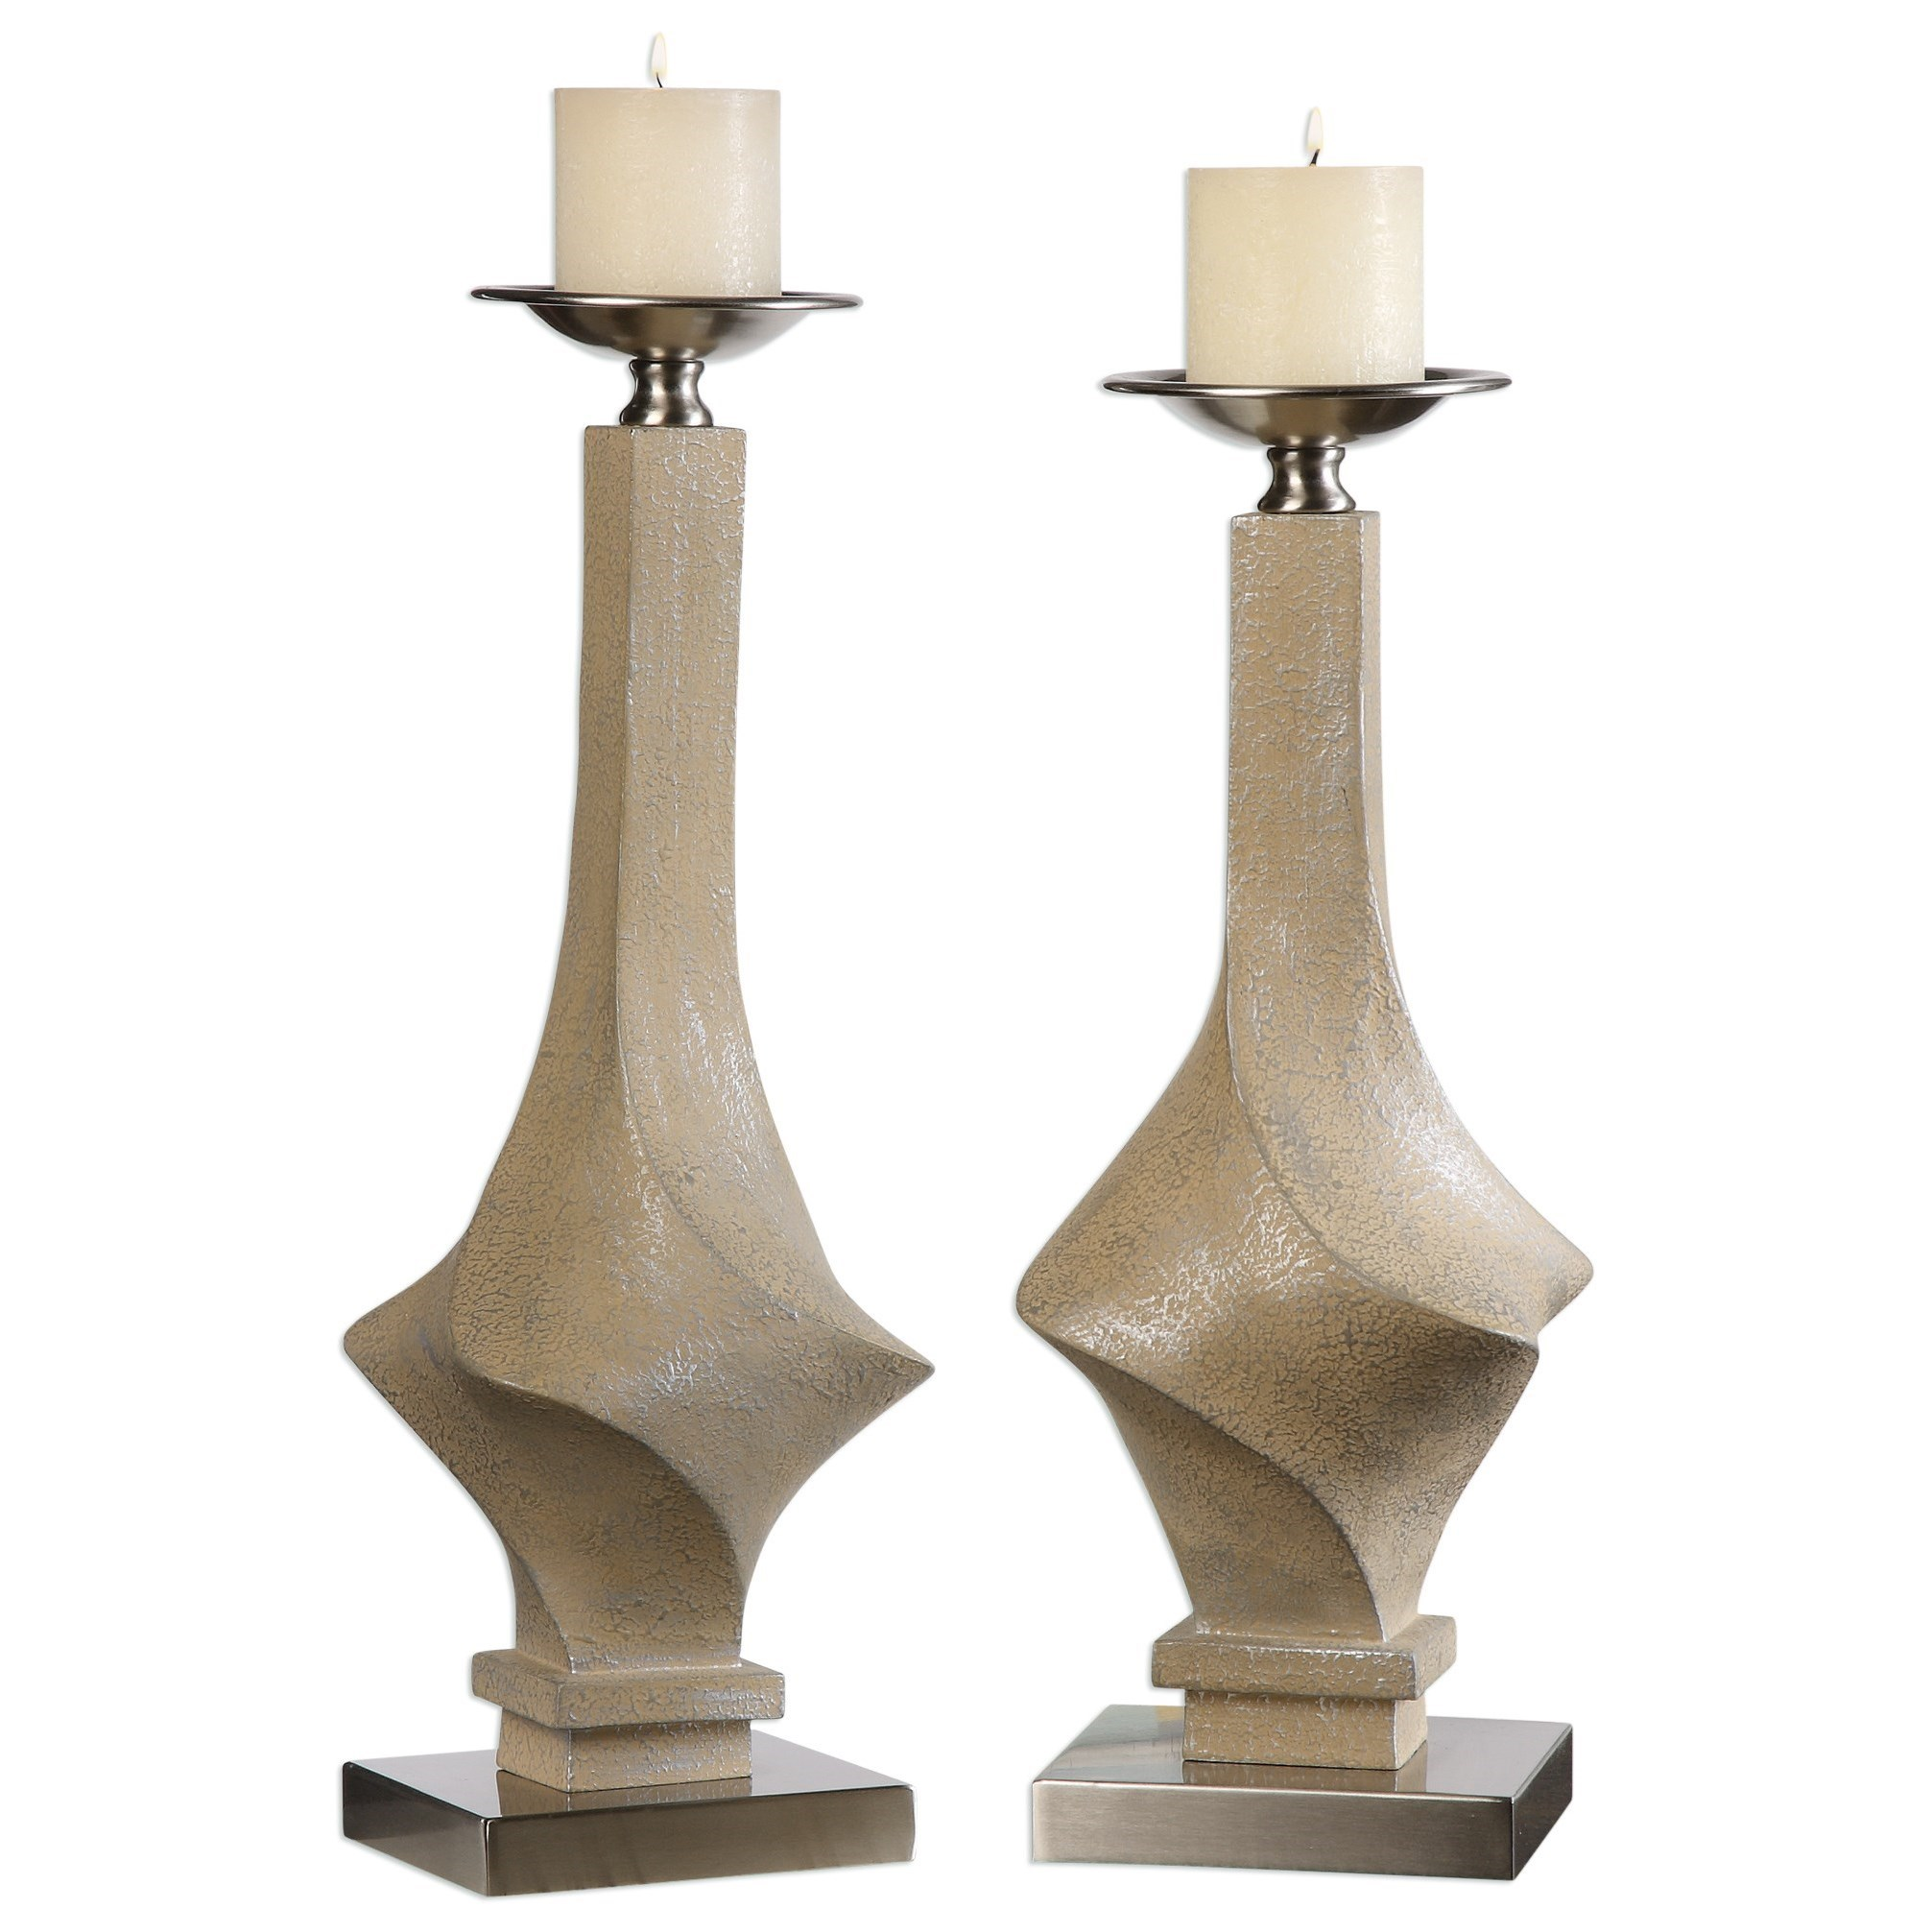 Uttermost Accessories Roseta Candleholders (Set of 2) - Item Number: 20174